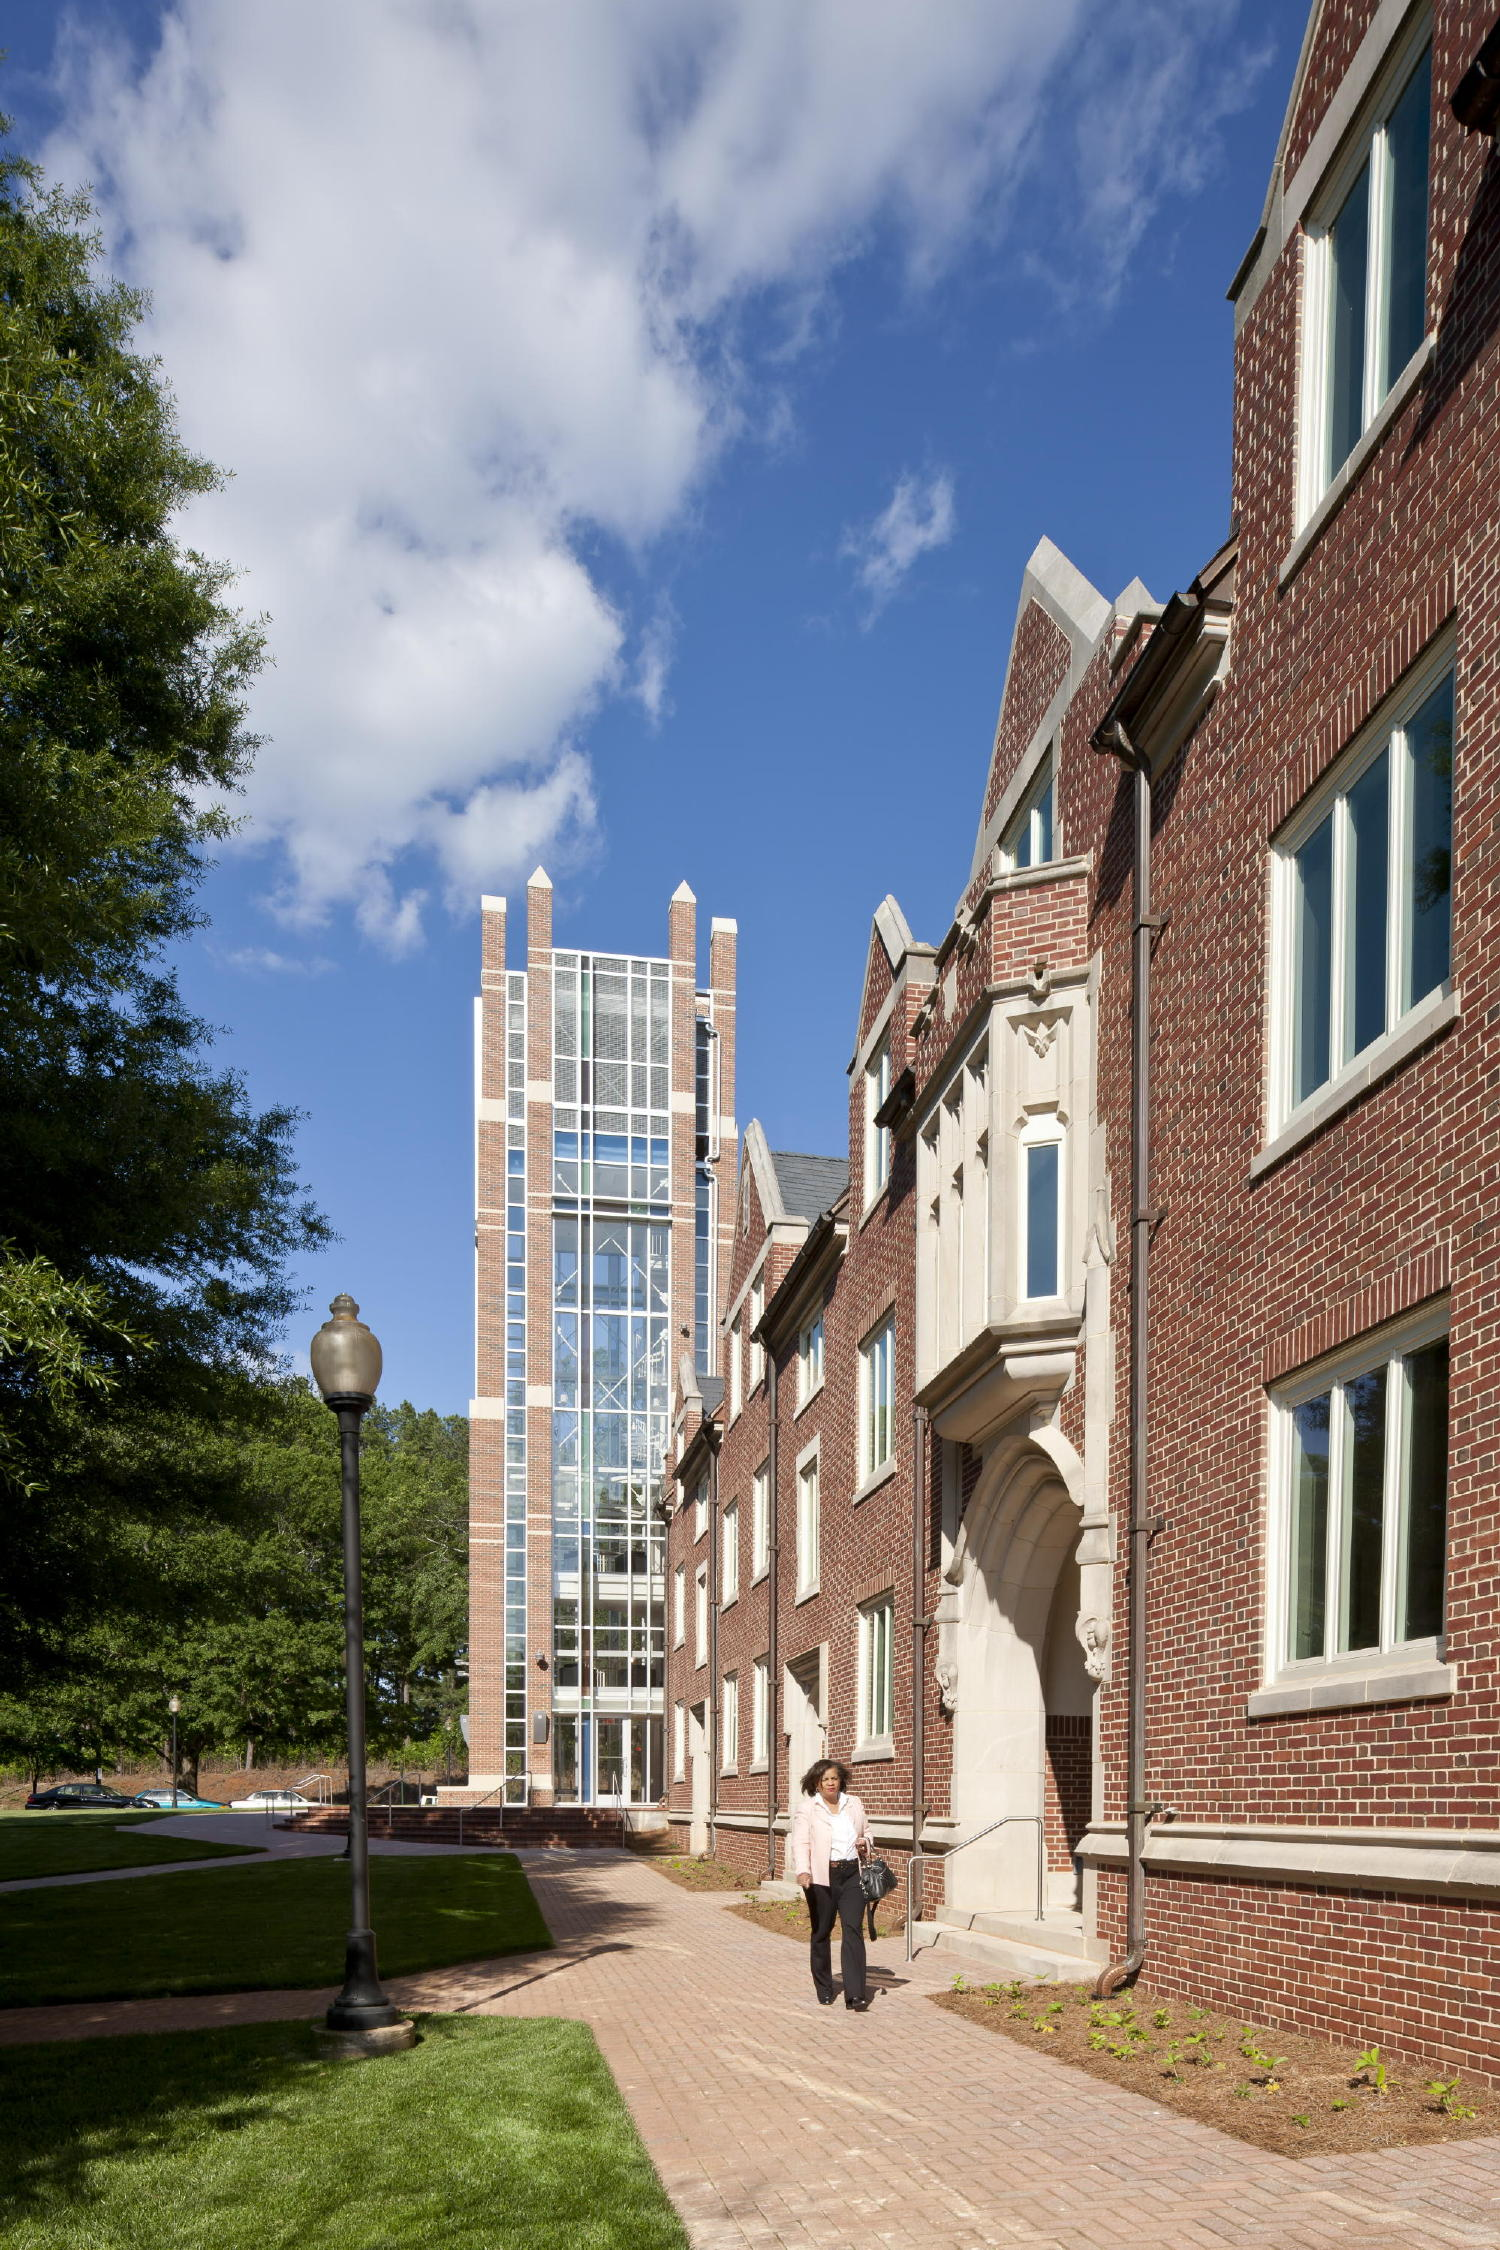 Lord, Aeck & Sargent's assessment of Columbia Theological Seminary's master plan led to the conclusion that the three-story historic dormitory (right), built in 1932, was of significant historical value, so the architects rehabilitated the building and inserted the smaller program spaces inside. Larger classroom areas and campus receiving functions are in the added wings. The 80-foot-tall tower (background) knits together existing and new construction. c 2012 Jonathan Hillyer / Atlanta